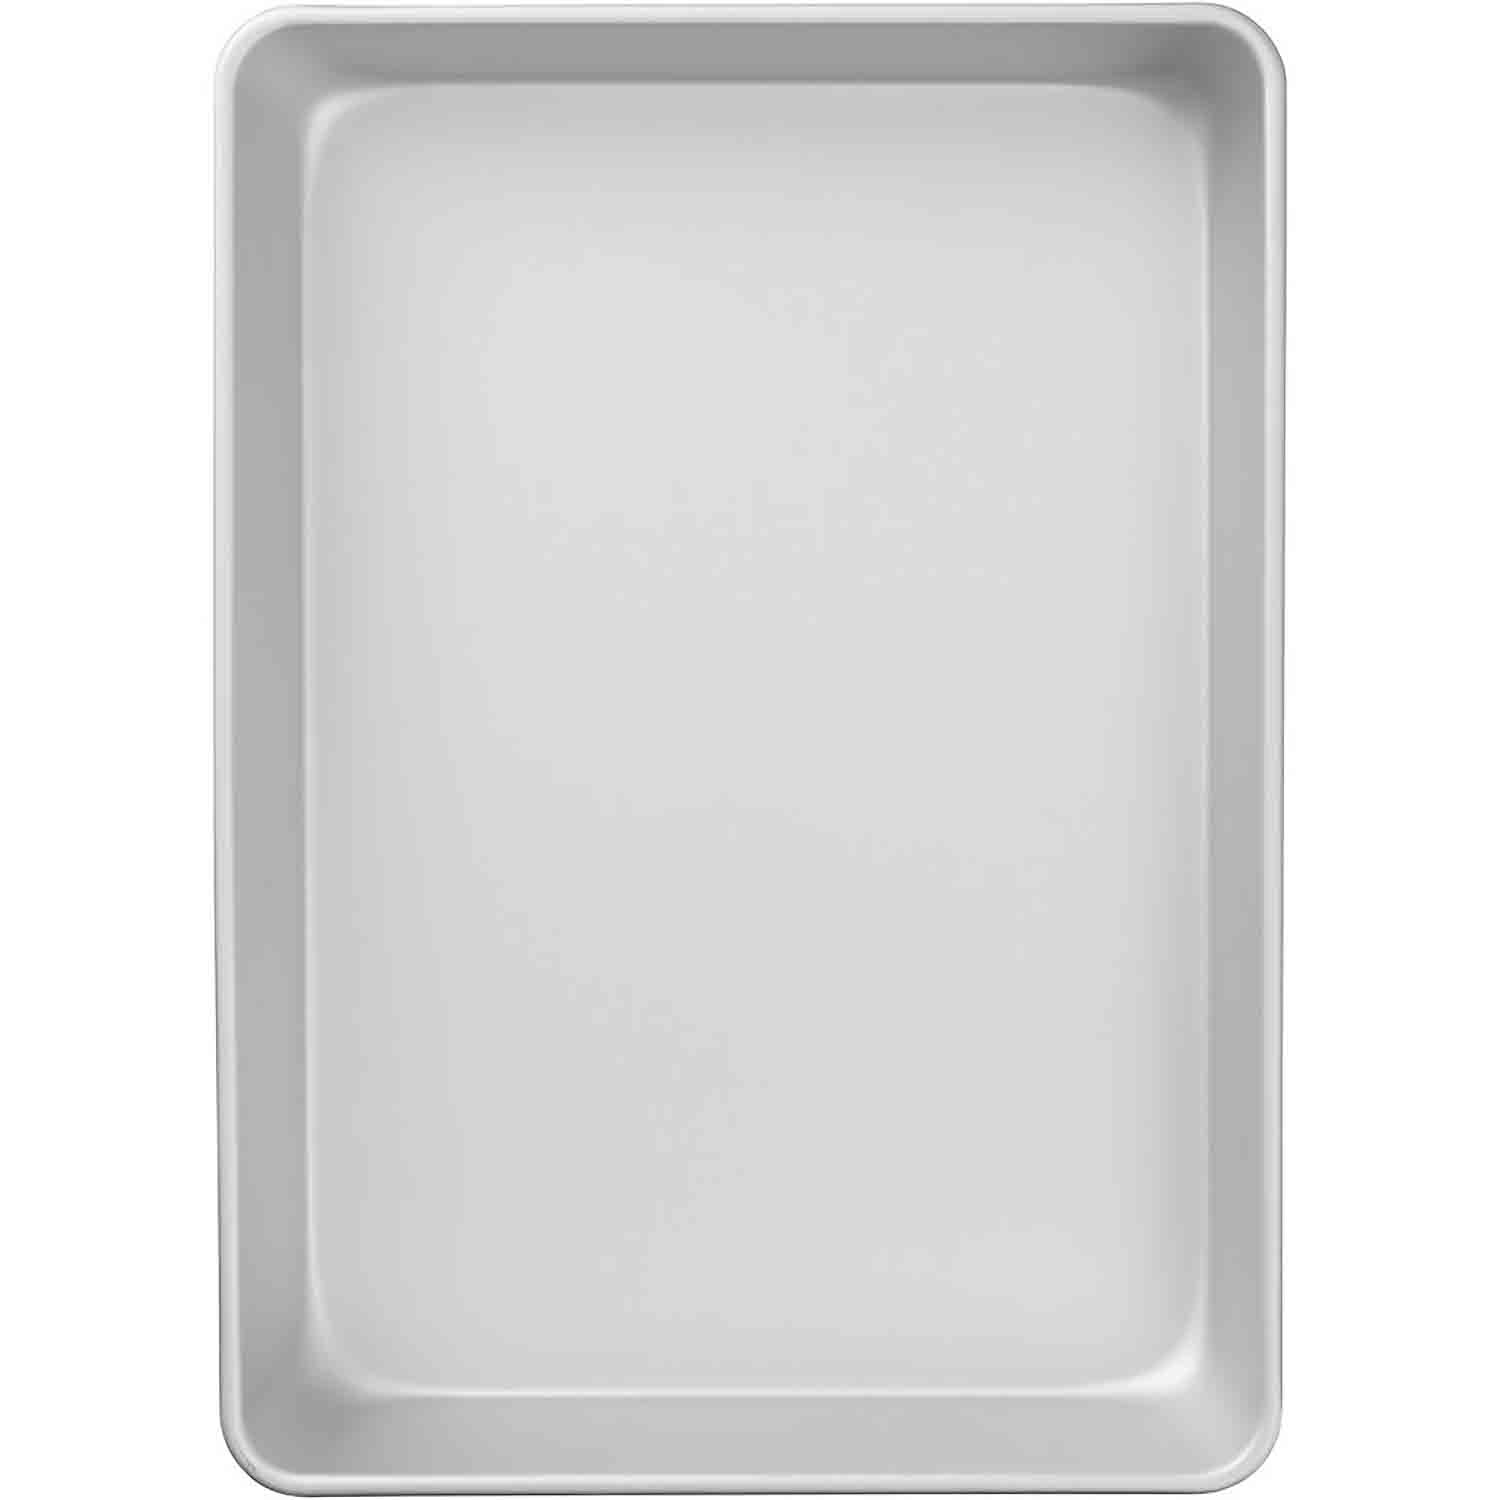 "9"" X 13"" Quarter Sheet Cake Pan"